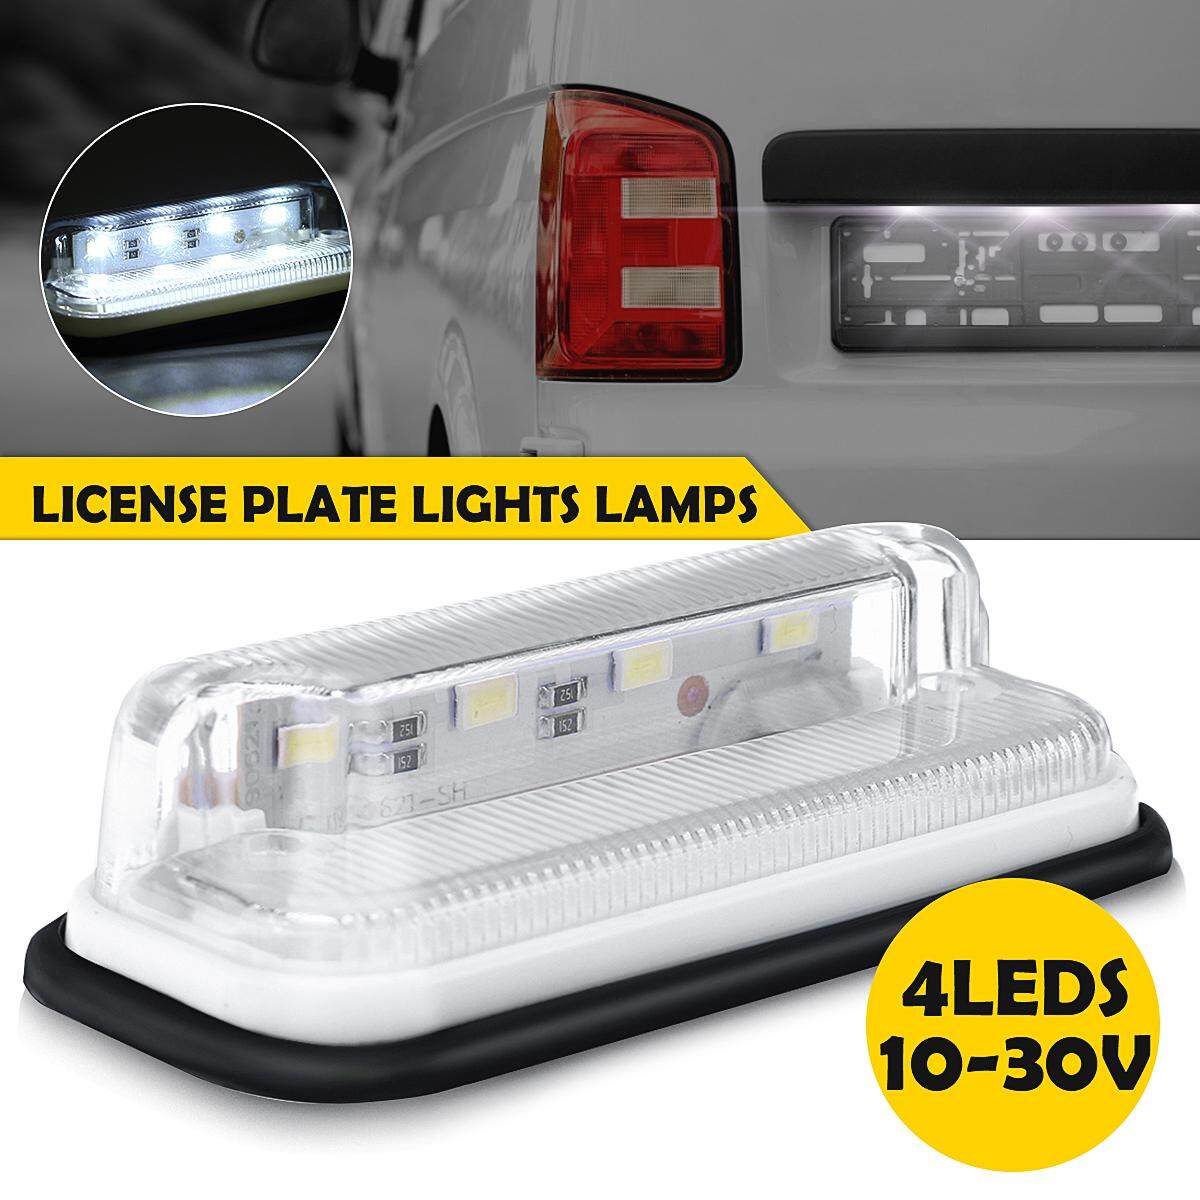 2-Pack Trailer Caravan and more Acouto LED Truck Tailgate Light Bar Strip Reverse Stop Turn Signal Running Lights for Pickups 12V RV SUV